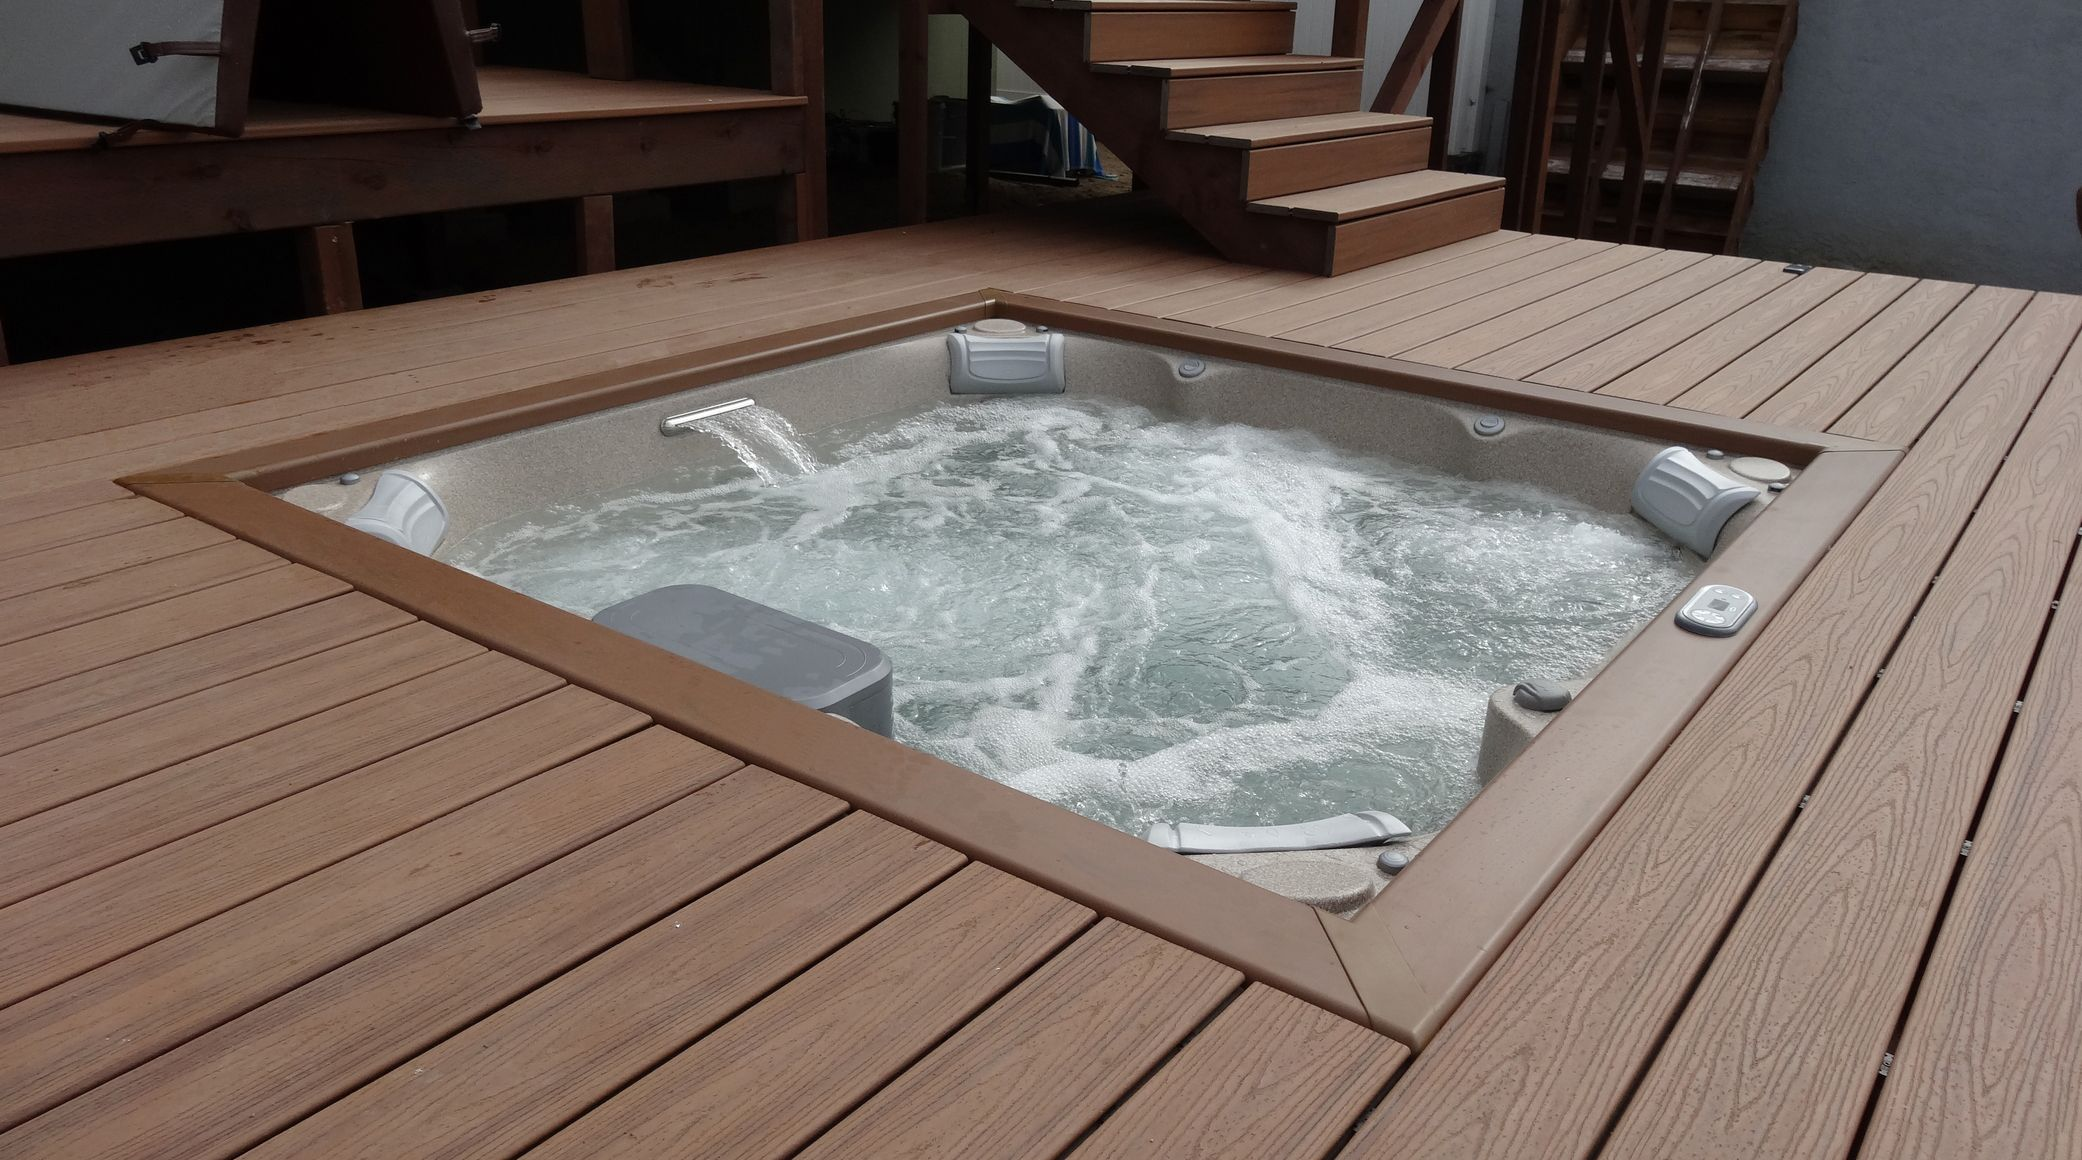 Jacuzzi j lx for more information please visit terasa - Jacuzzi sur terrasse ...